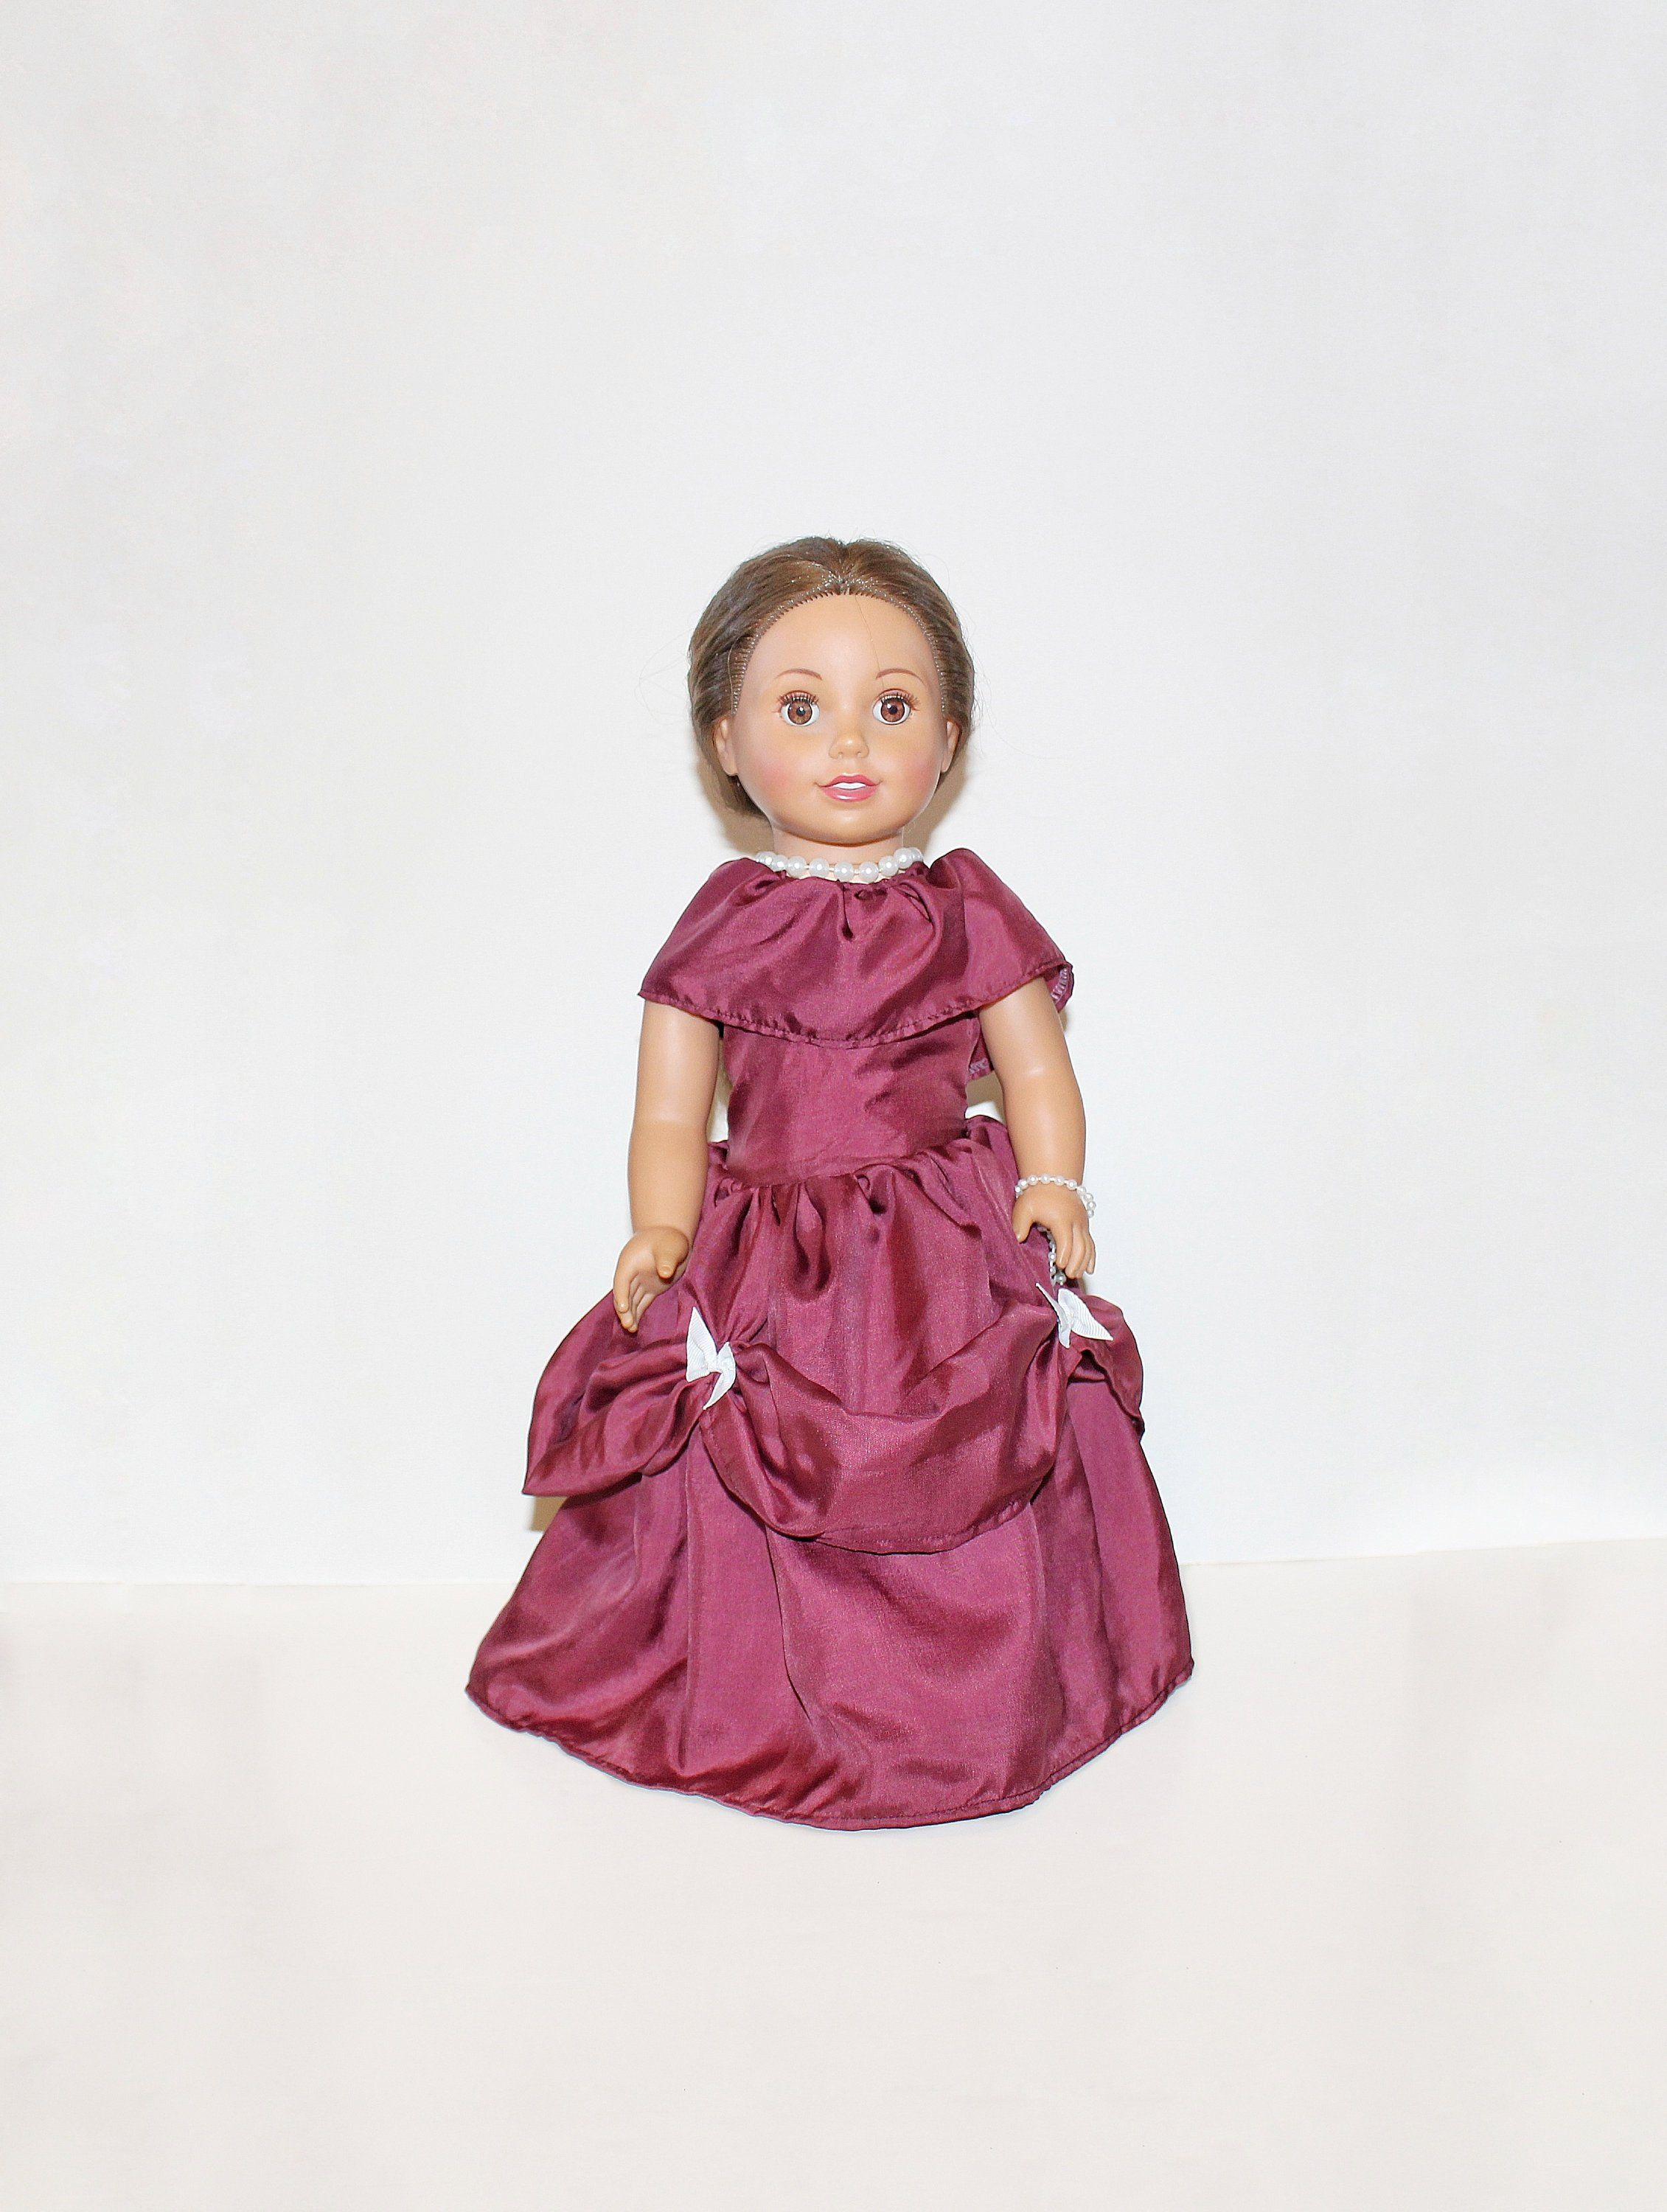 Rose Ball Gown Doll Dress, American Girl Doll, 18 Doll Clothes, Historical Doll Clothes, Gift Ideas for Girls, Christmas or Birthday, Toys #historicaldollclothes